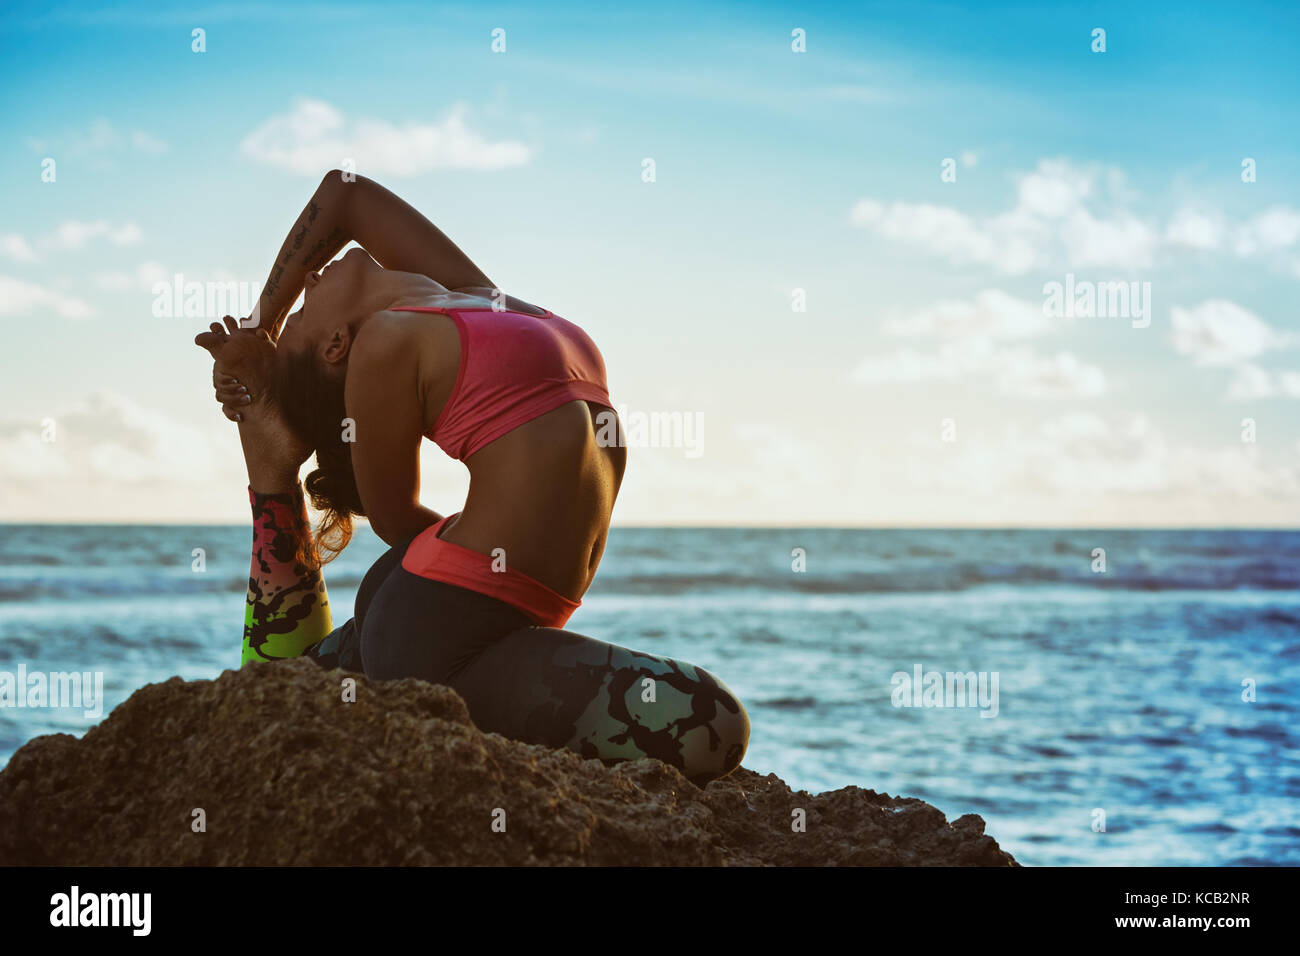 Meditation on sunset sky background. Young active woman sit in yoga pose on beach rock, stretching to keep fit and - Stock Image